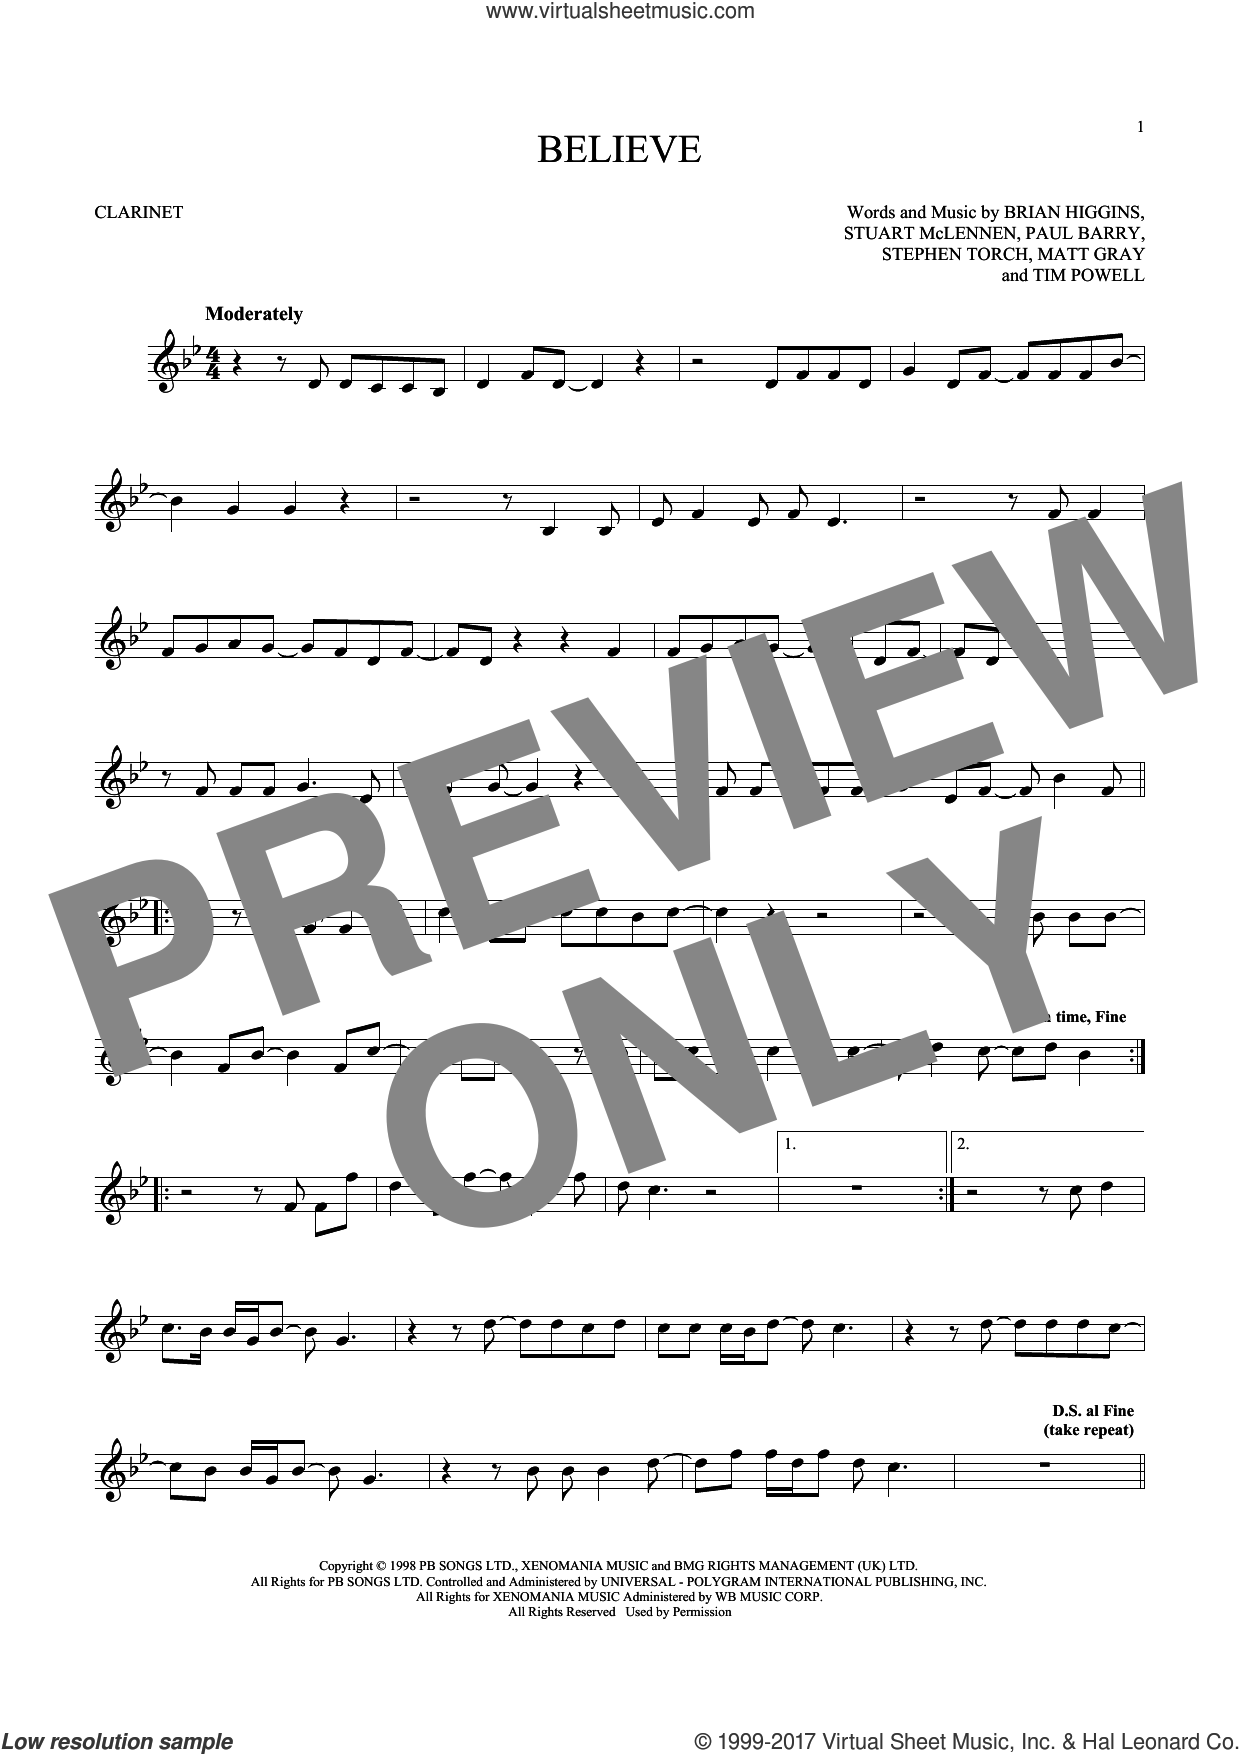 Believe sheet music for clarinet solo by Cher, Brian Higgins, Matt Gray, Paul Barry, Stephen Torch, Stuart McLennen and Timothy Powell, intermediate skill level